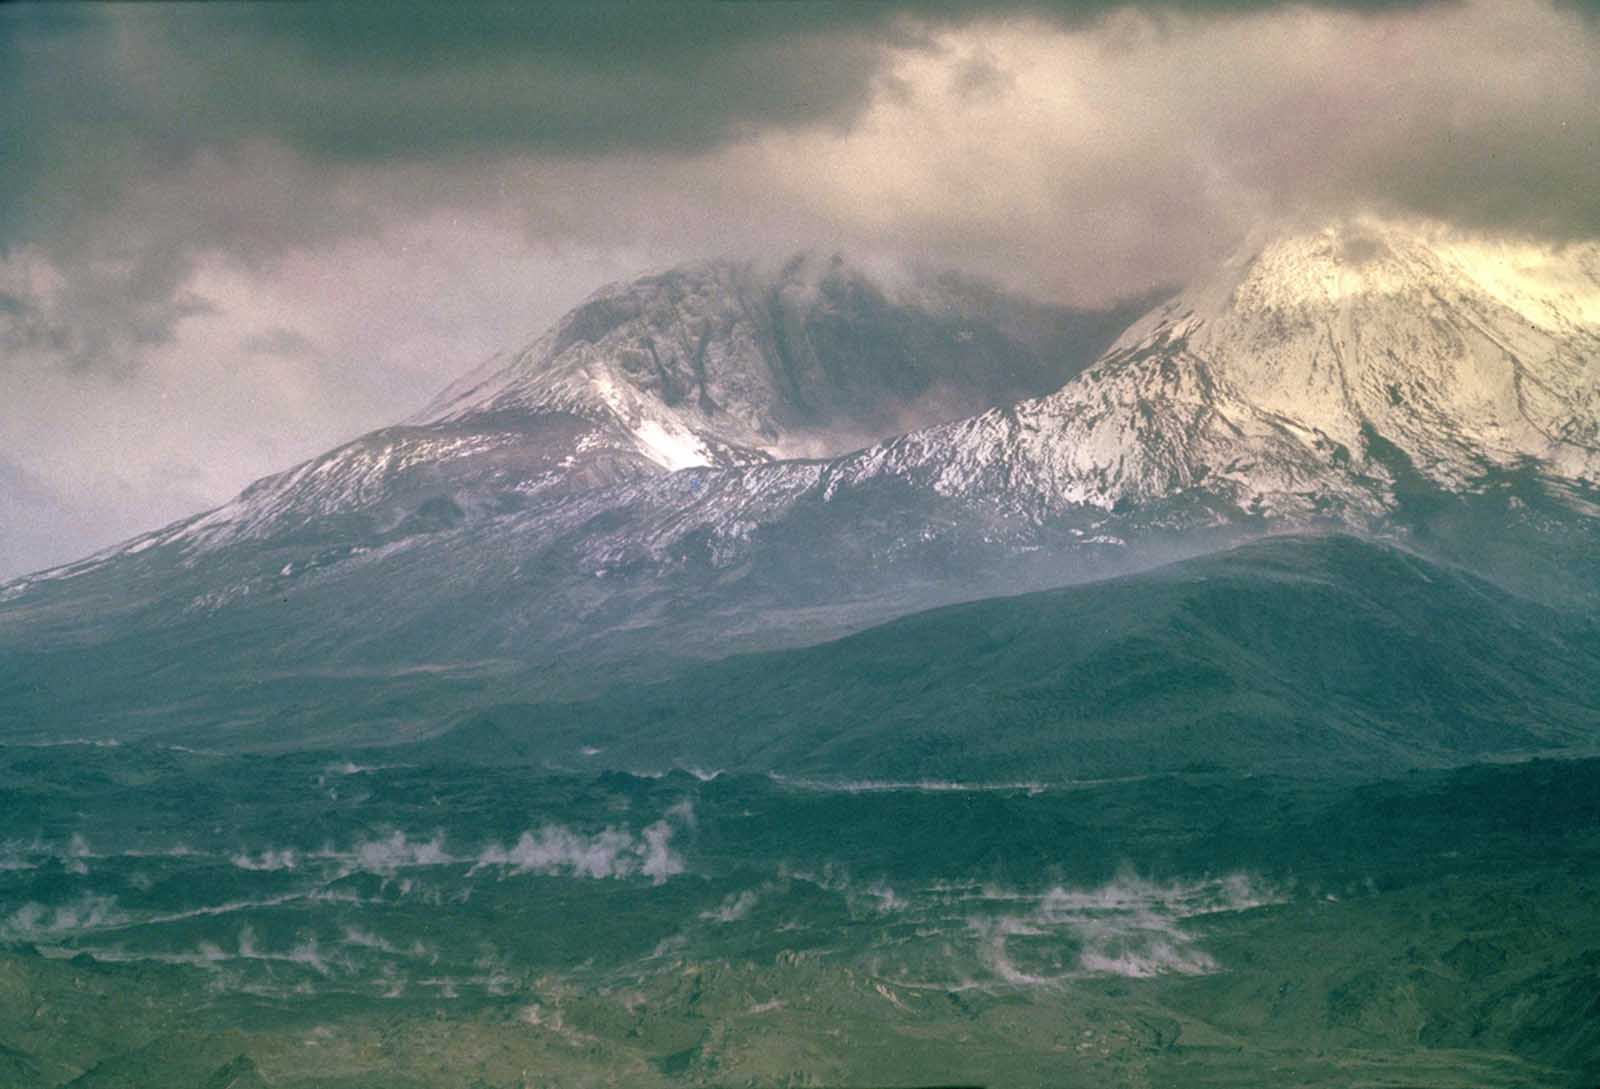 Mount St. Helens, shortly after the eruption pf May 18, 1980.